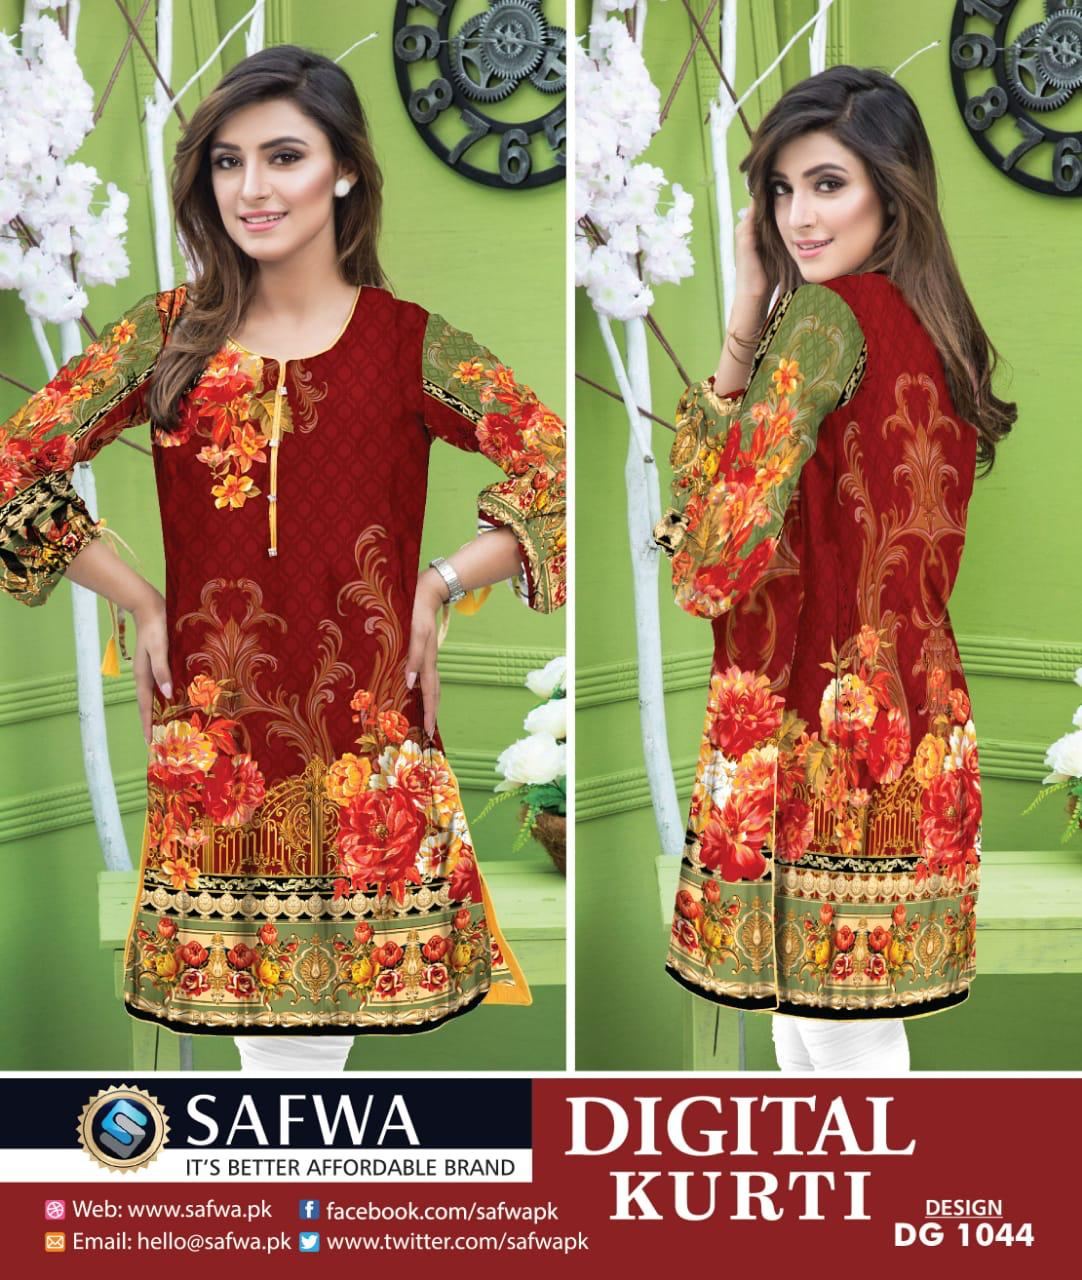 SAFWA DRESS DESIGN, DRESSES, PAKISTANI DRESSES, DG1044- SAFWA DIGITAL COTTON PRINT KURTI COLLECTION -SHIRT KURTI KAMEEZ-Shirt-Kurti-SAFWA -SAFWA Brand Pakistan online shopping for Designer Dresses